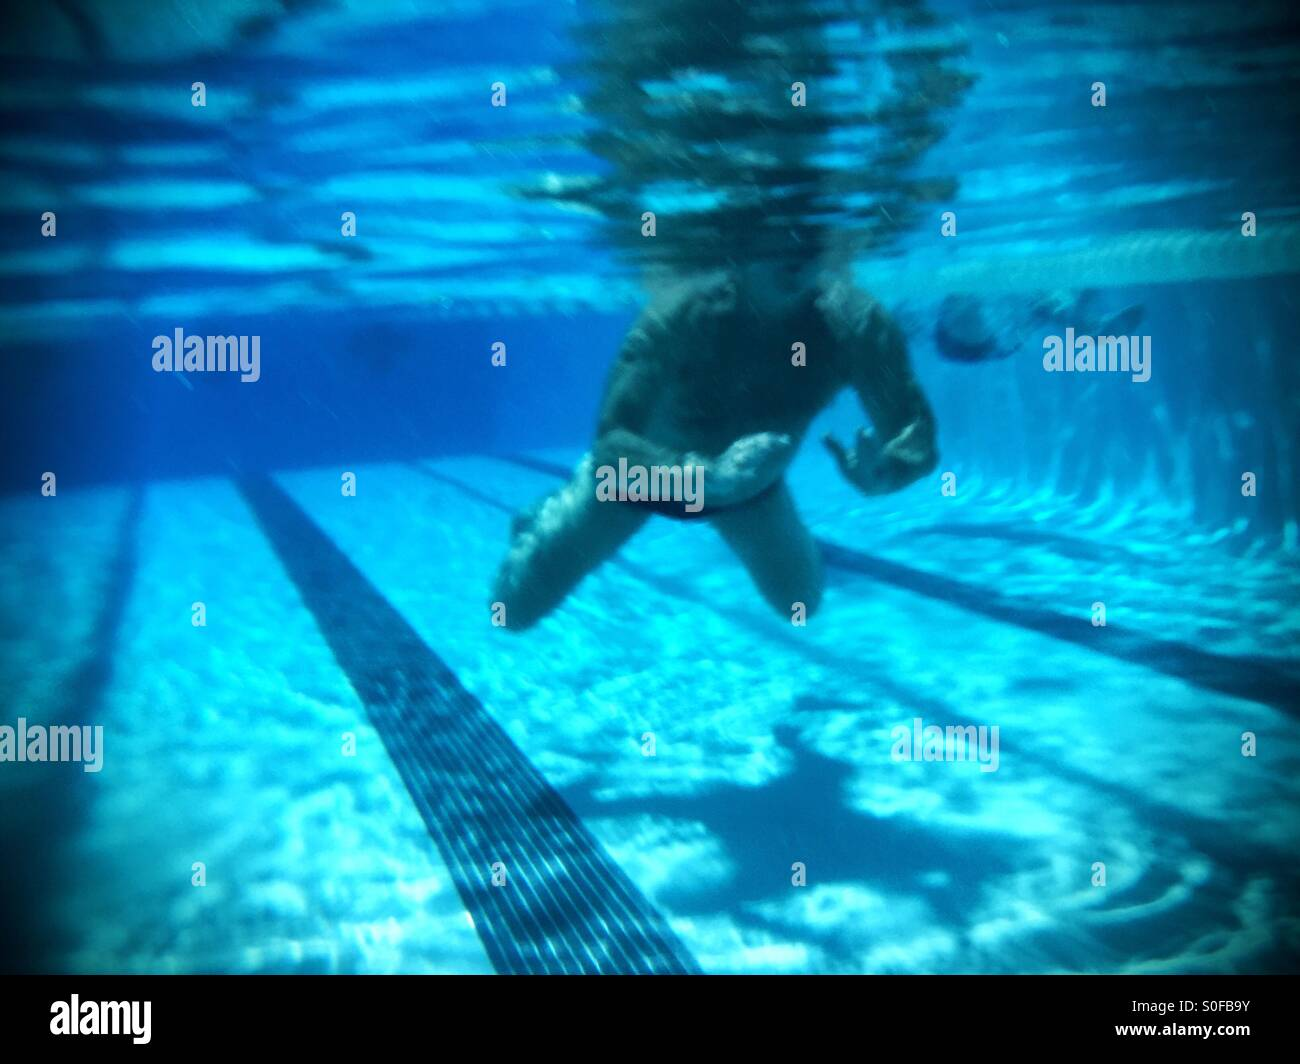 Swimmer swimming breaststroke underwater view with watery shadow, reflections. - Stock Image